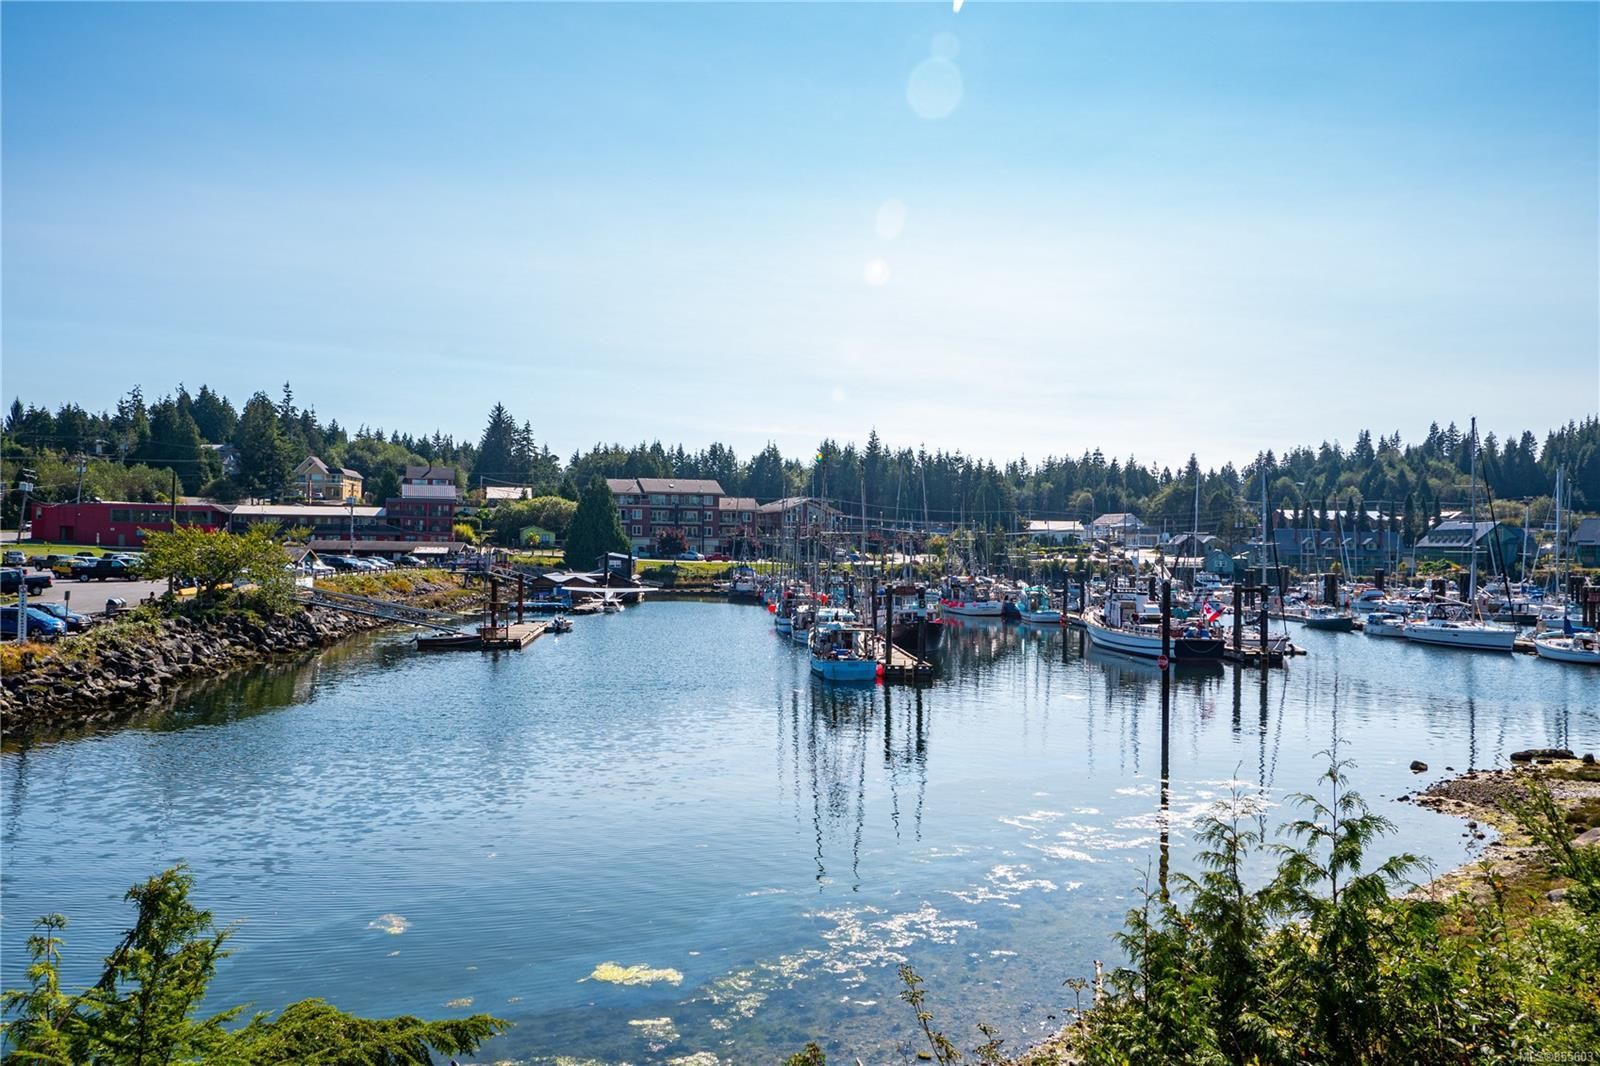 Main Photo: 802 1971 Harbour Dr in : PA Ucluelet Condo for sale (Port Alberni)  : MLS®# 855603